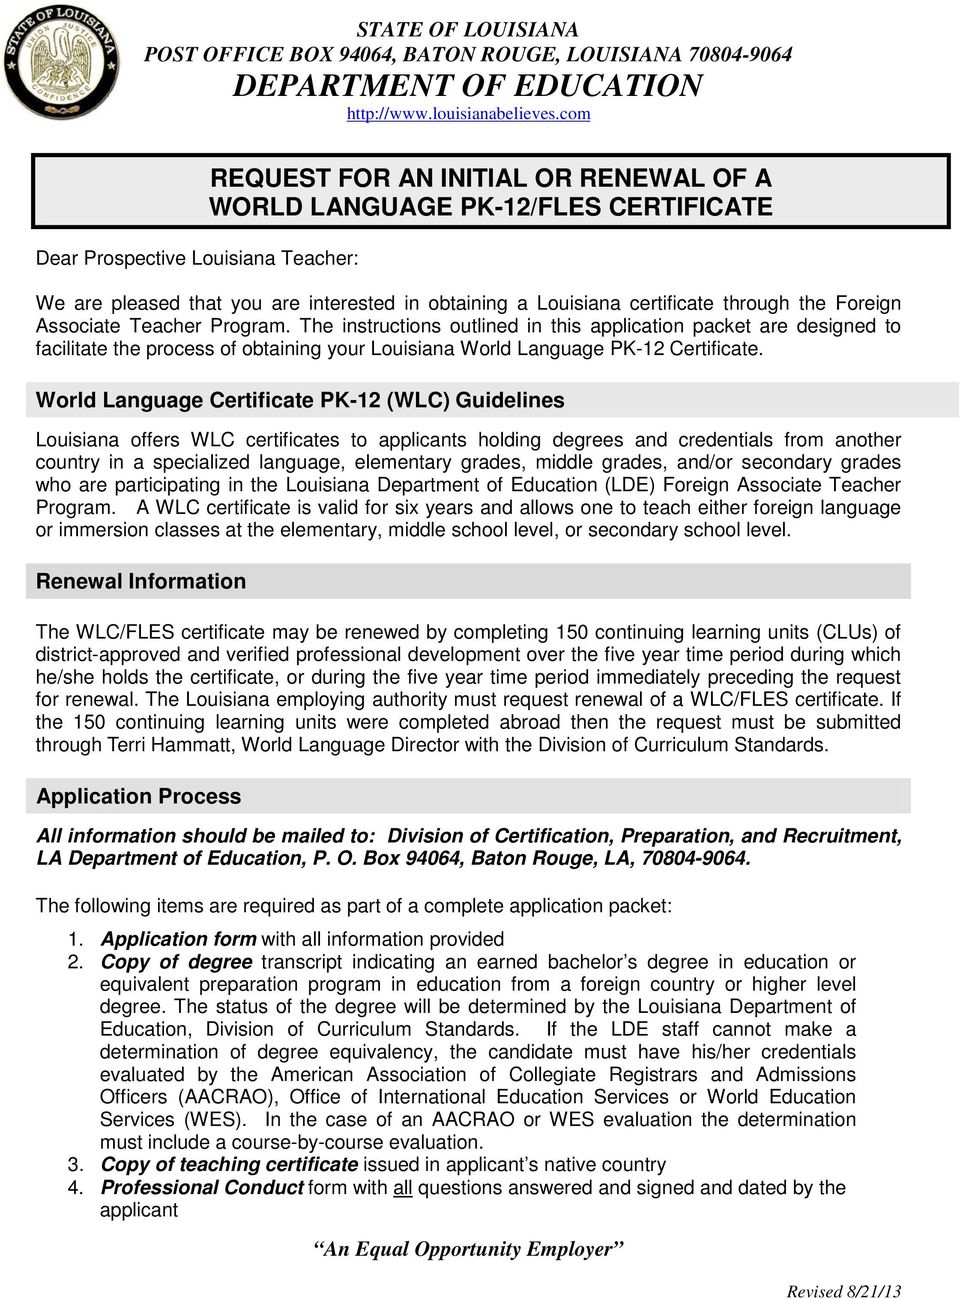 The instructions outlined in this application packet are designed to facilitate the process of obtaining your Louisiana World Language PK-12 Certificate.